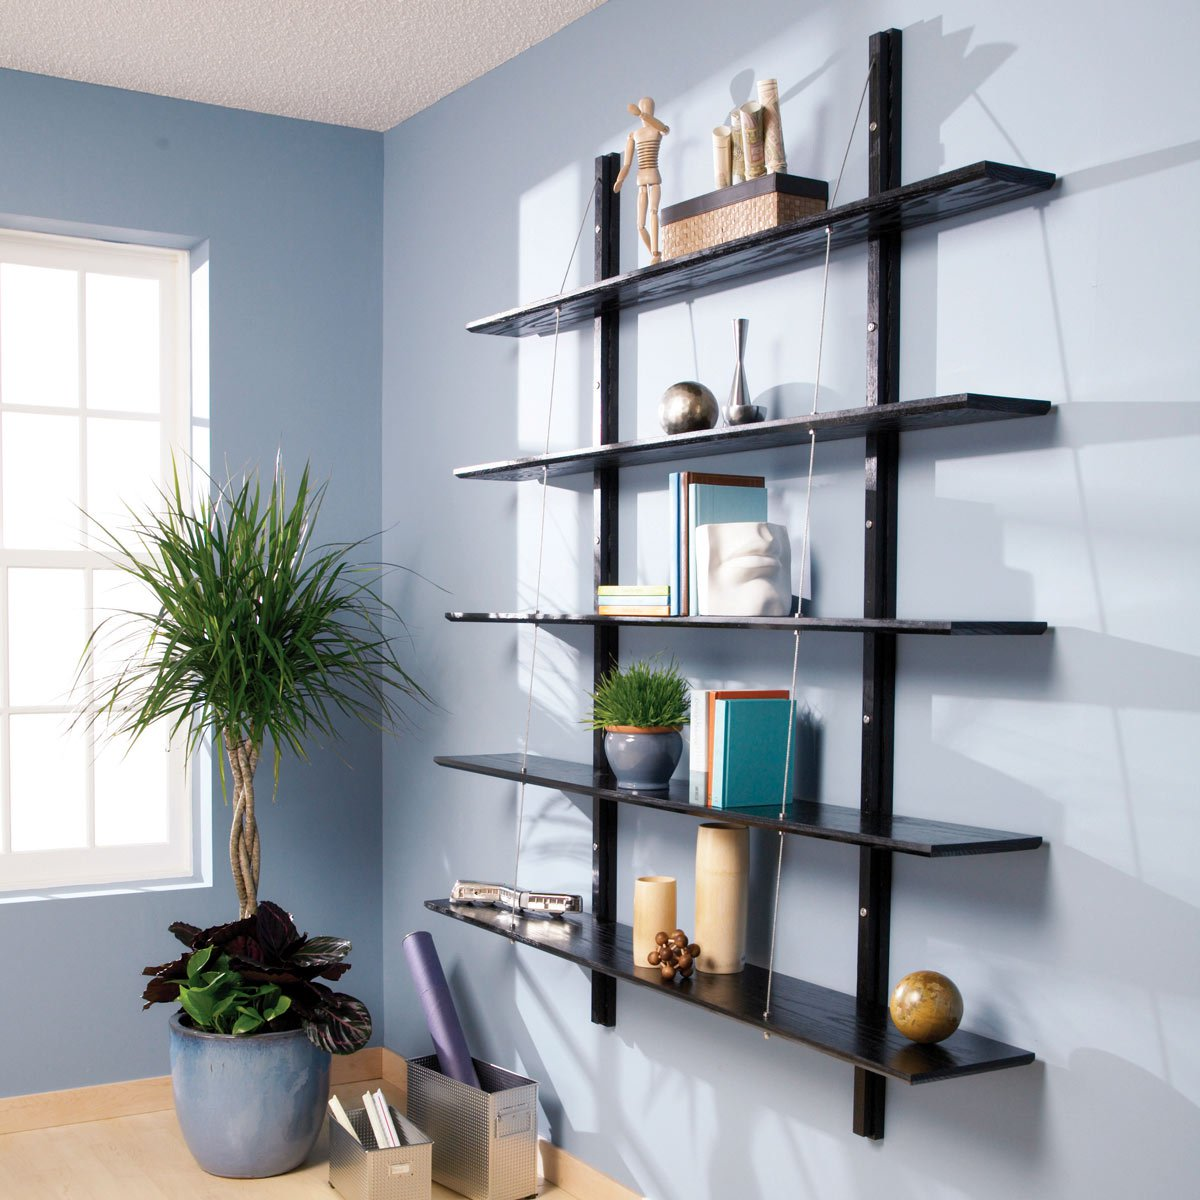 bookcase projects and building tips the family handyman modula joinery floating shelves suspended bookshelves wood shelf kits unfinished inch lee valley coat hooks fireplace beam